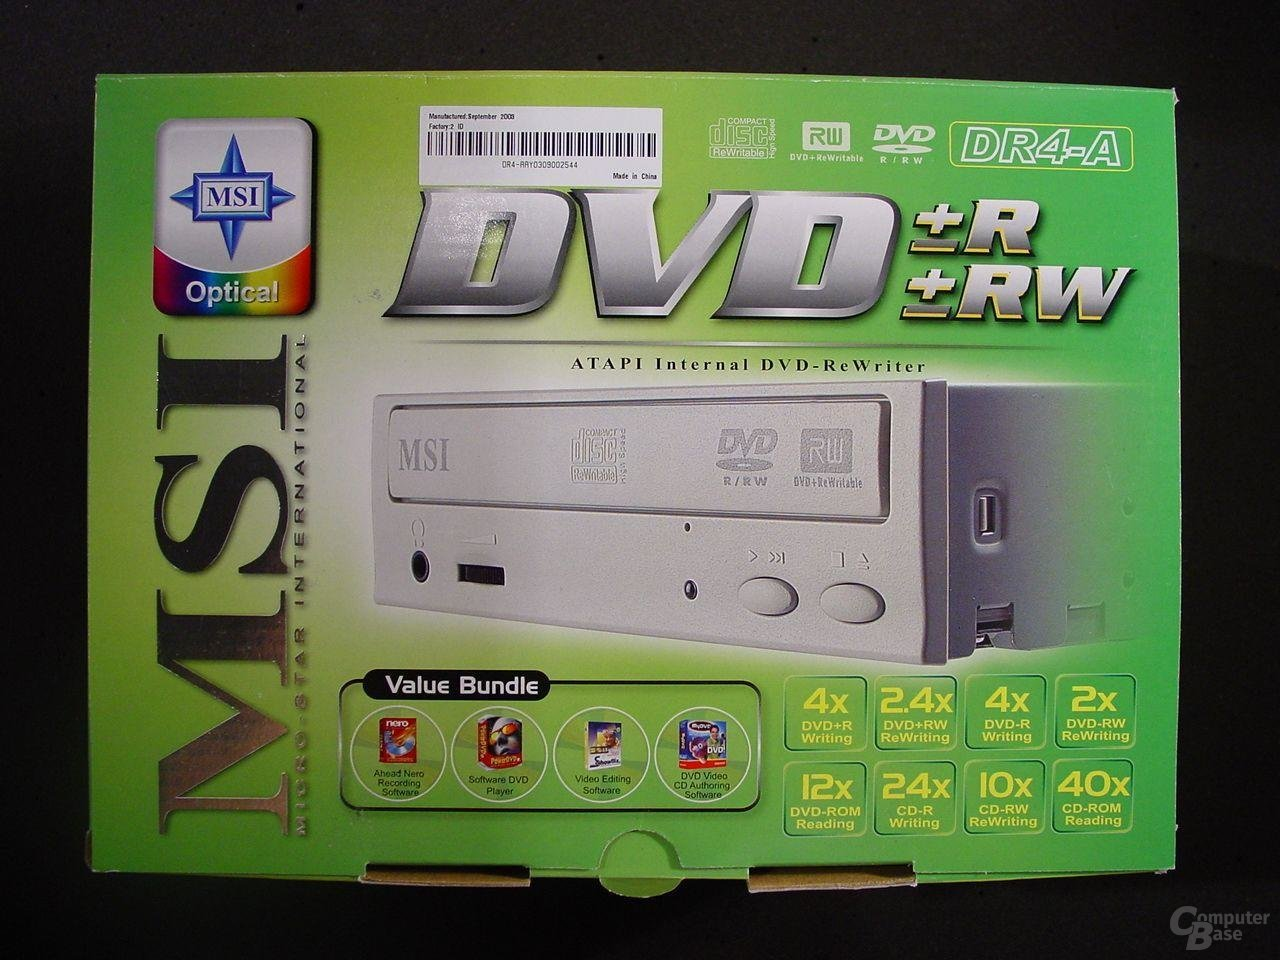 Verpackung MSI DR4-A